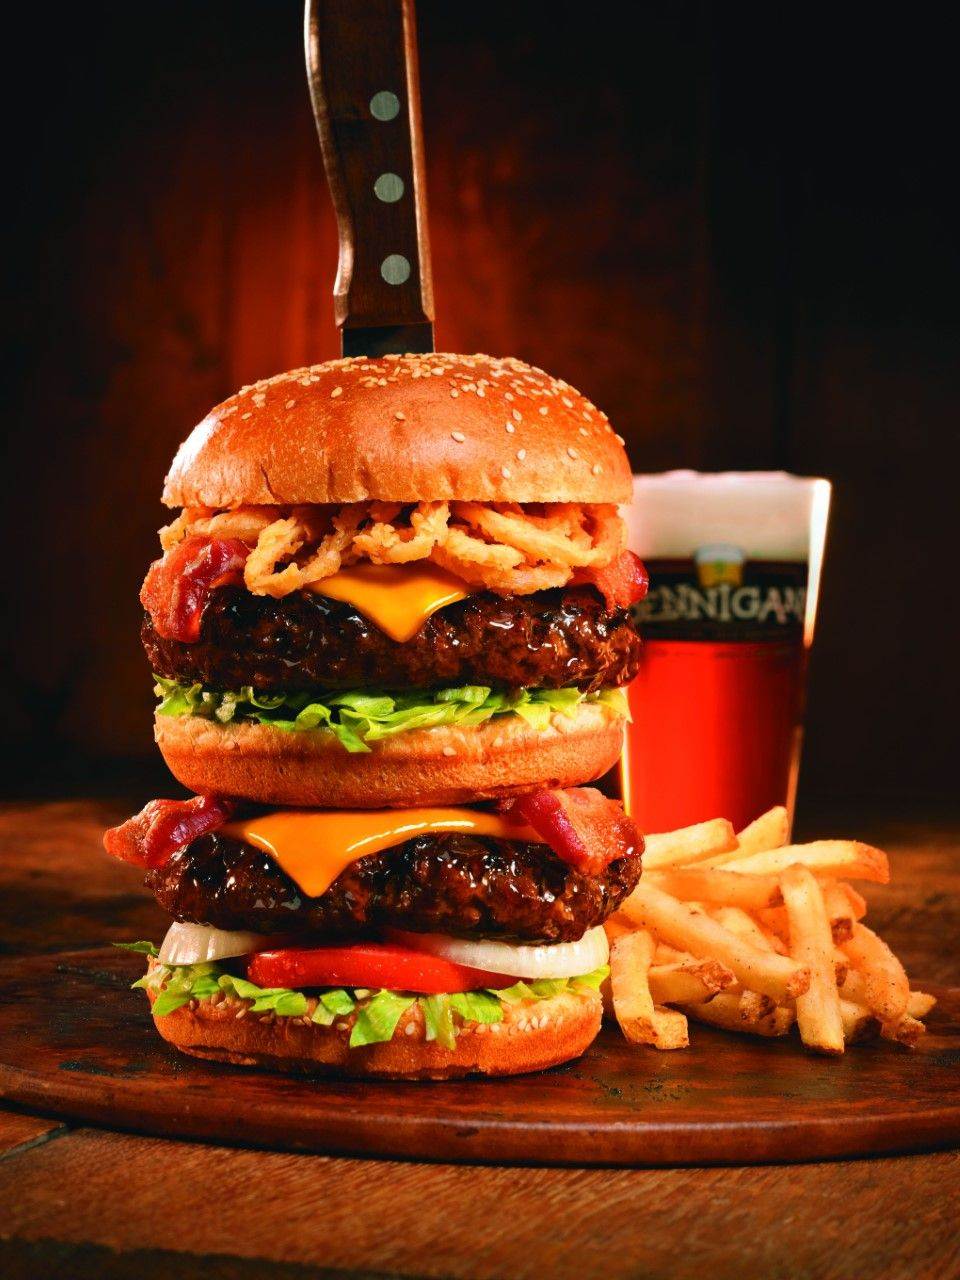 Bennigan's Builds Legendary Sales and Franchise Momentum for 2021